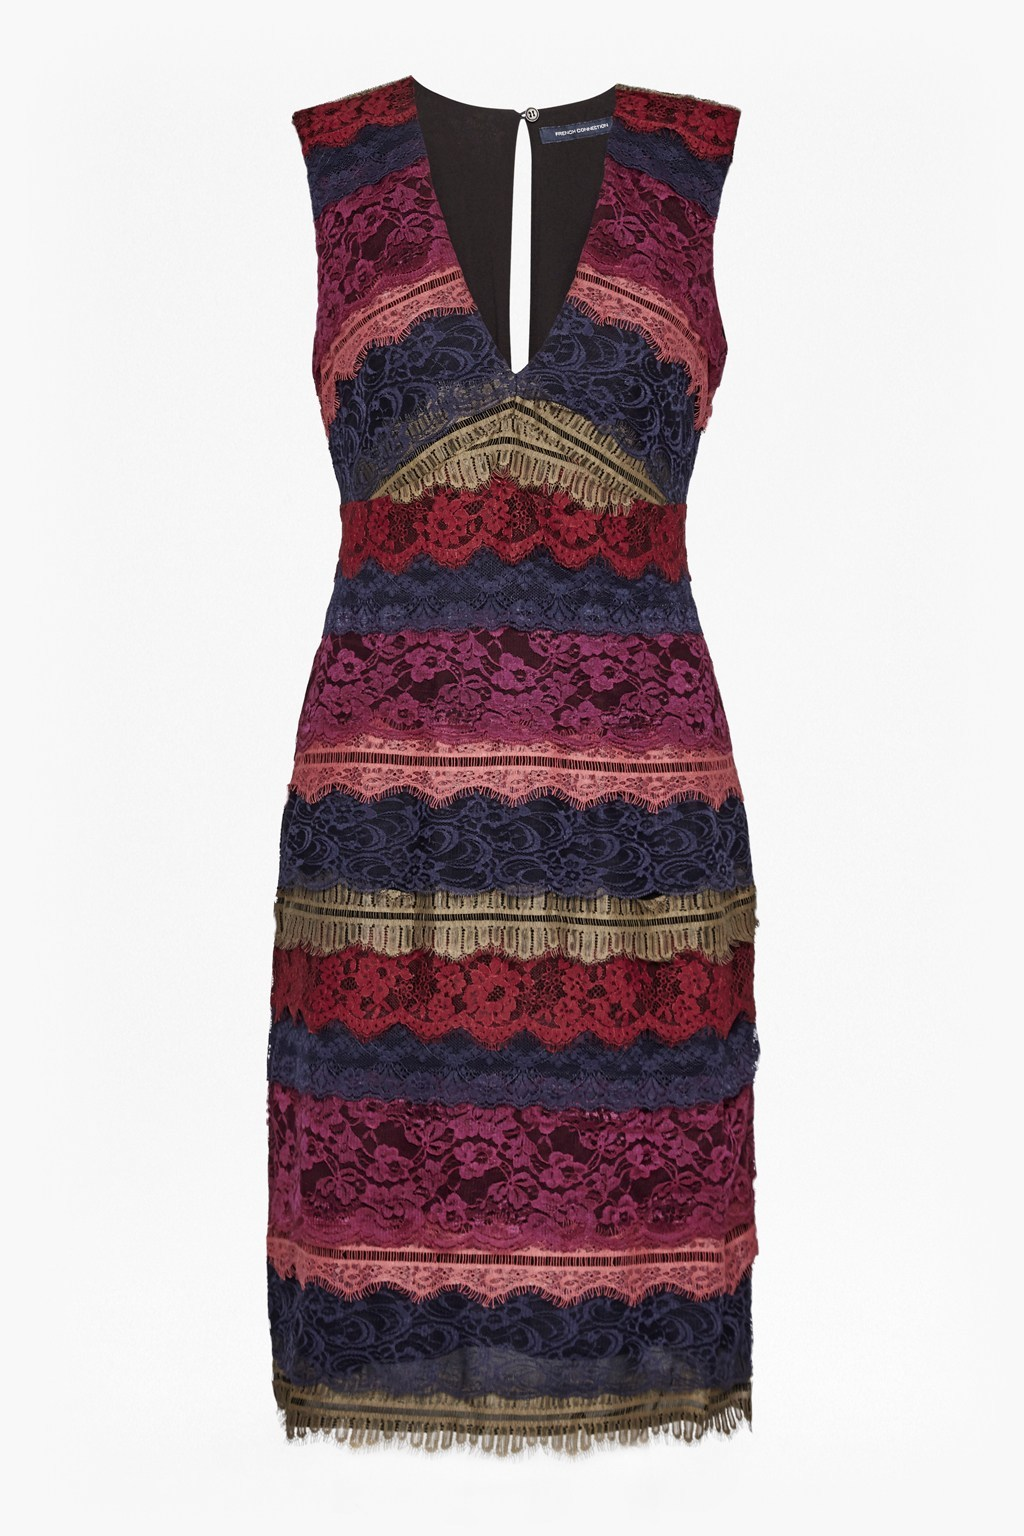 Dallaway Stripe Lace Pencil Dress Zinfandel Multi - style: shift; neckline: low v-neck; fit: tailored/fitted; pattern: horizontal stripes; sleeve style: sleeveless; predominant colour: burgundy; secondary colour: navy; occasions: evening; length: on the knee; fibres: polyester/polyamide - 100%; sleeve length: sleeveless; texture group: lace; pattern type: fabric; multicoloured: multicoloured; season: a/w 2016